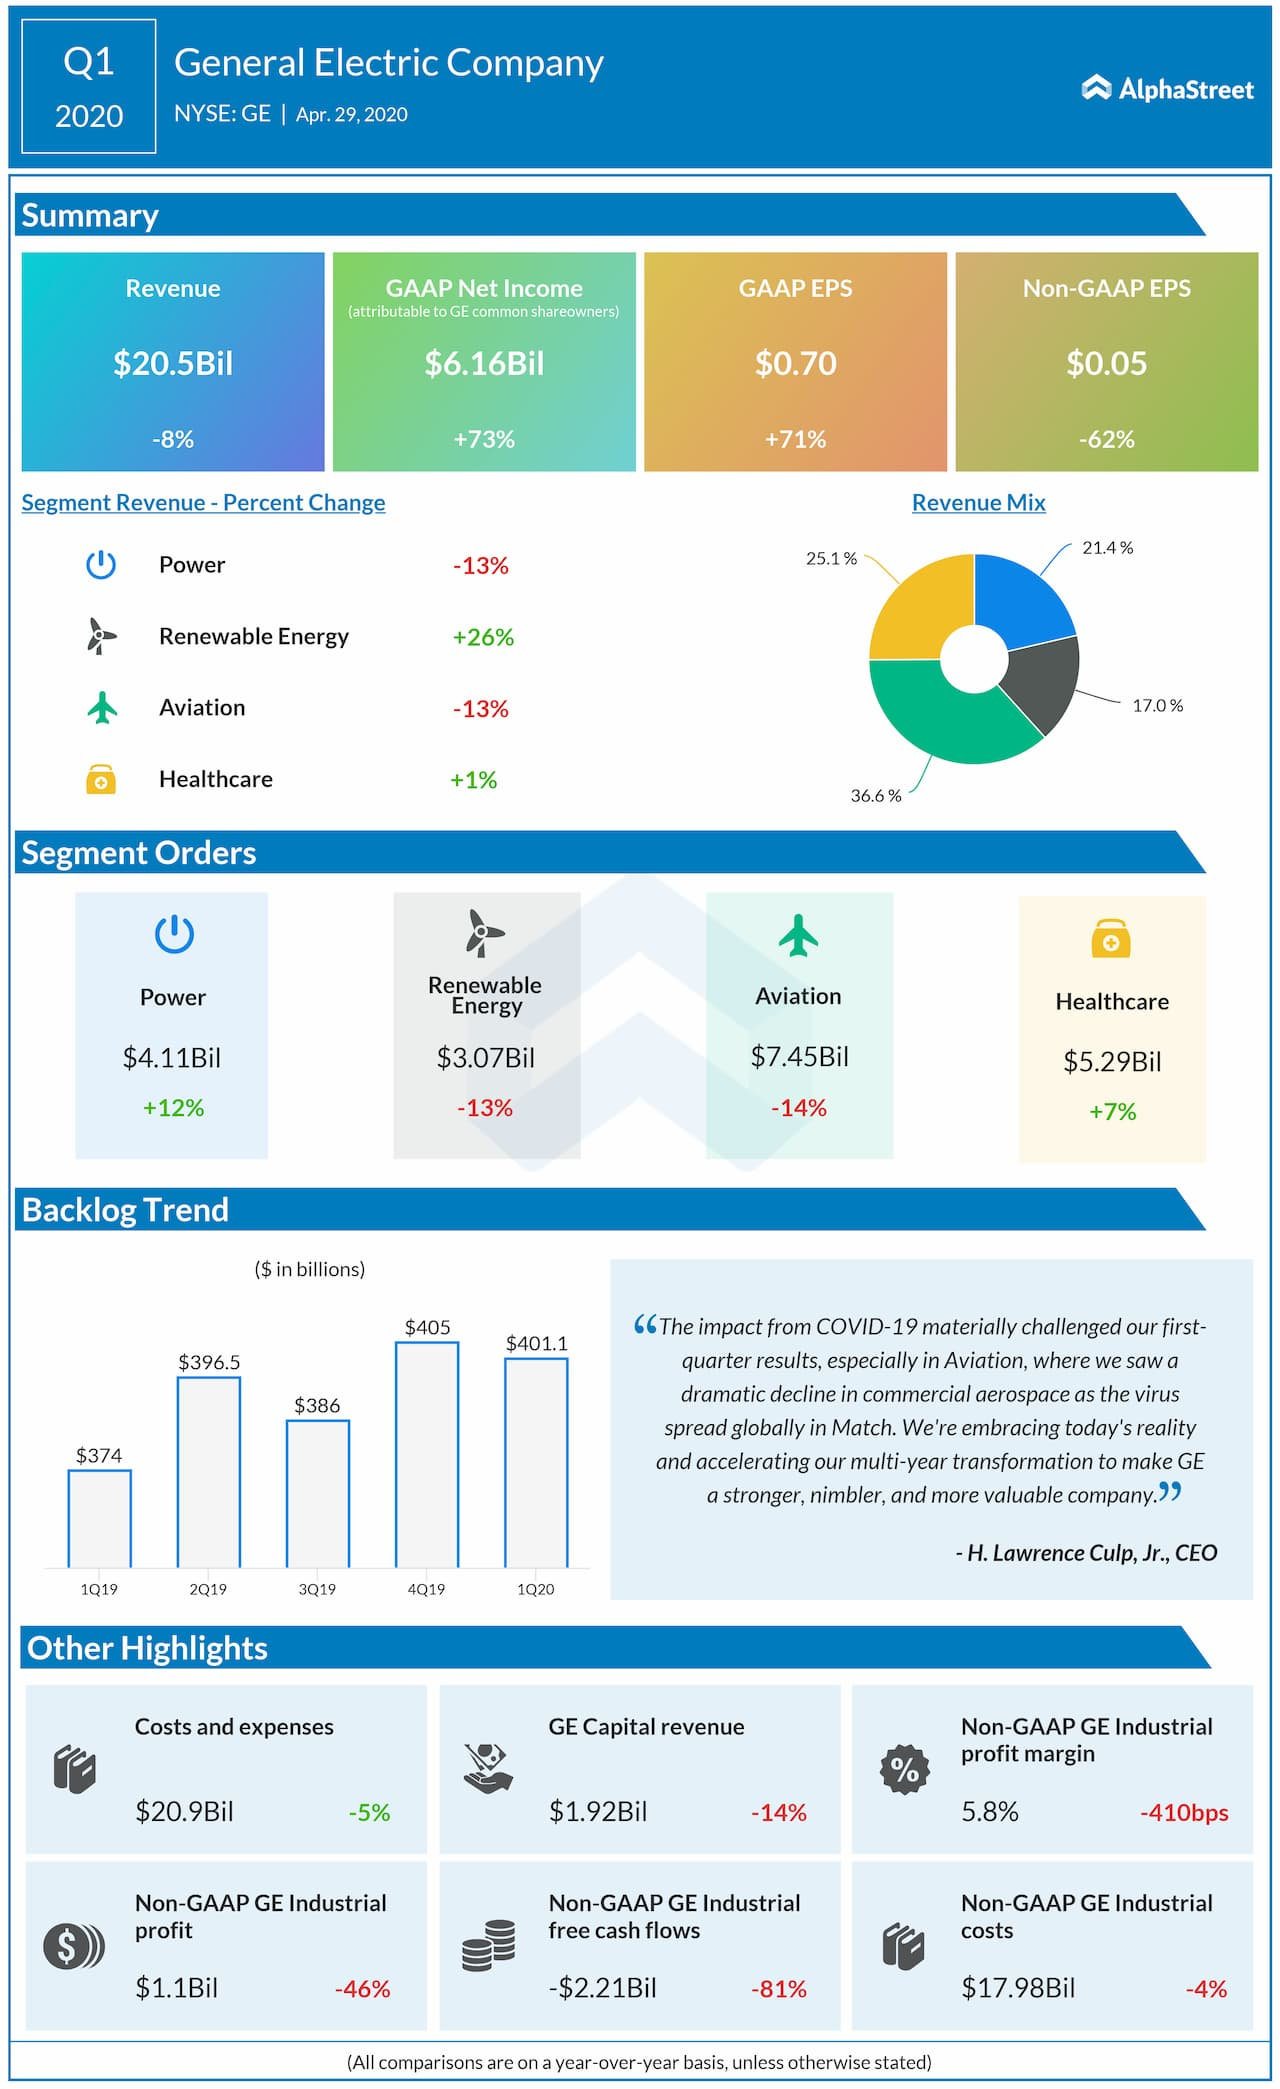 General Electric (GE) Q1 2020 earnings review